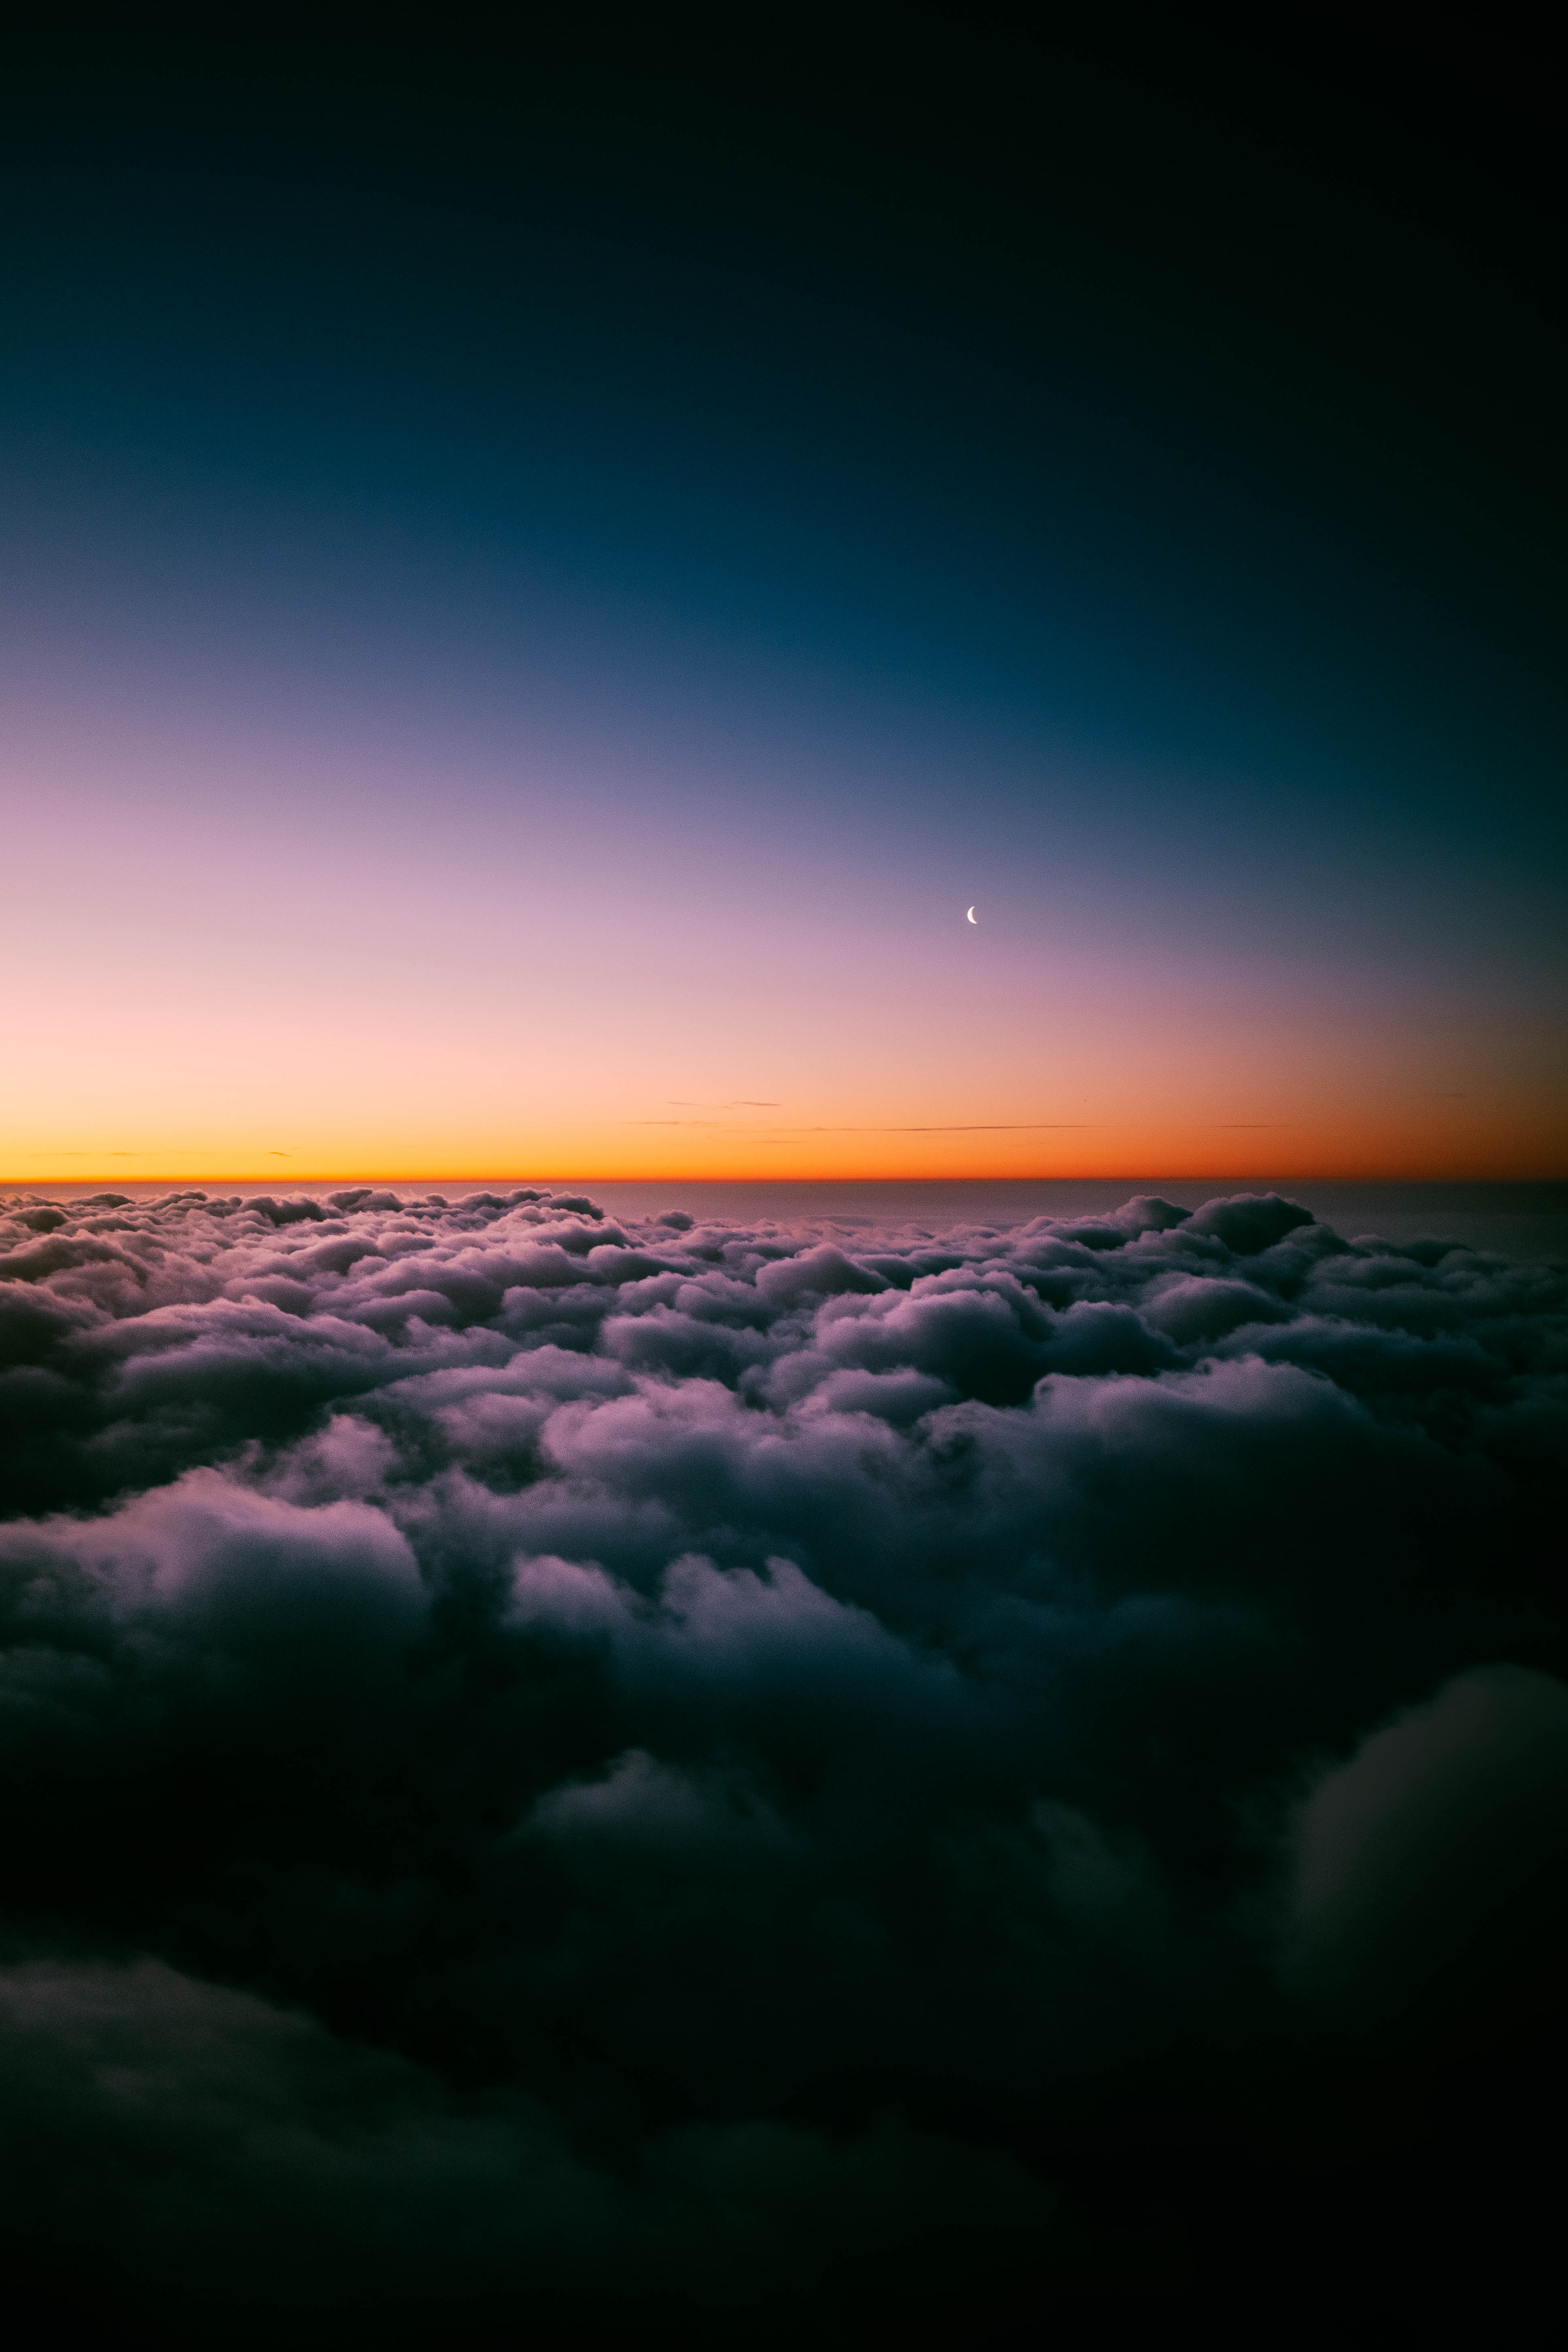 clouds porous sunset sky horizon twilight moon above above the clouds 4k 1943684 hd wallpaper backgrounds download itl cat